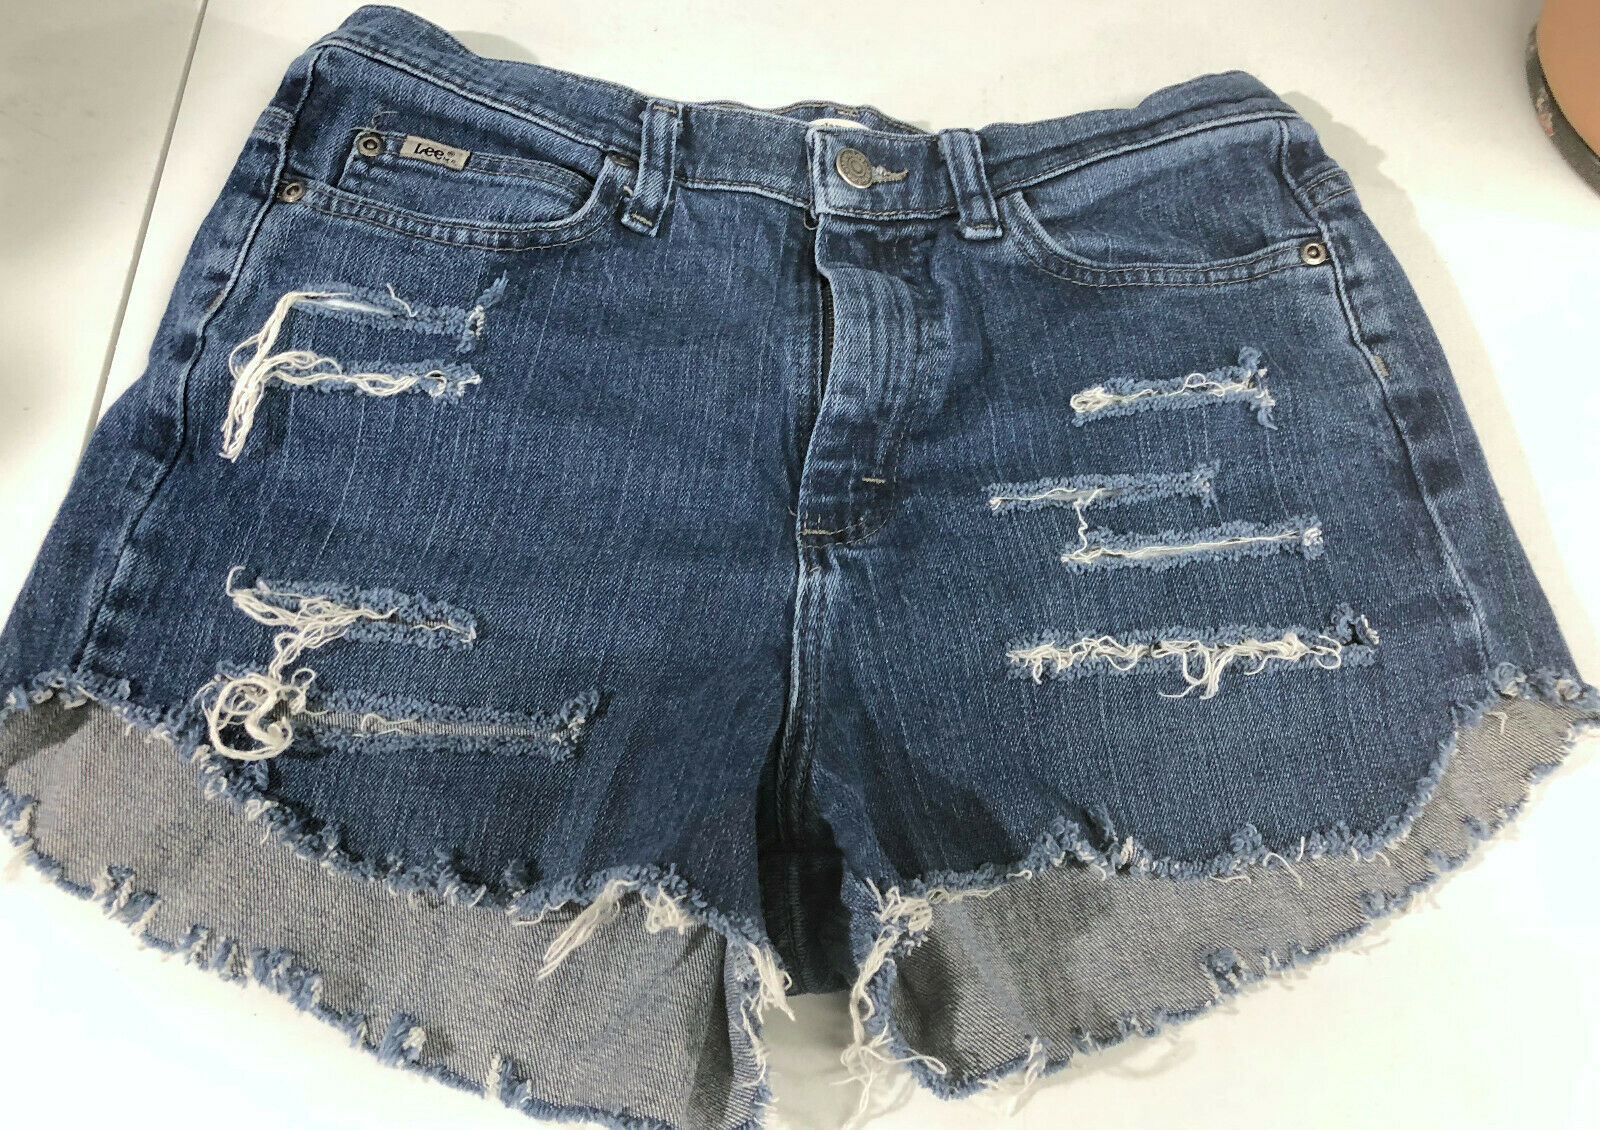 Primary image for Lee Jeans Distressed Blue Jean Short Shorts Booty Size 8 Long